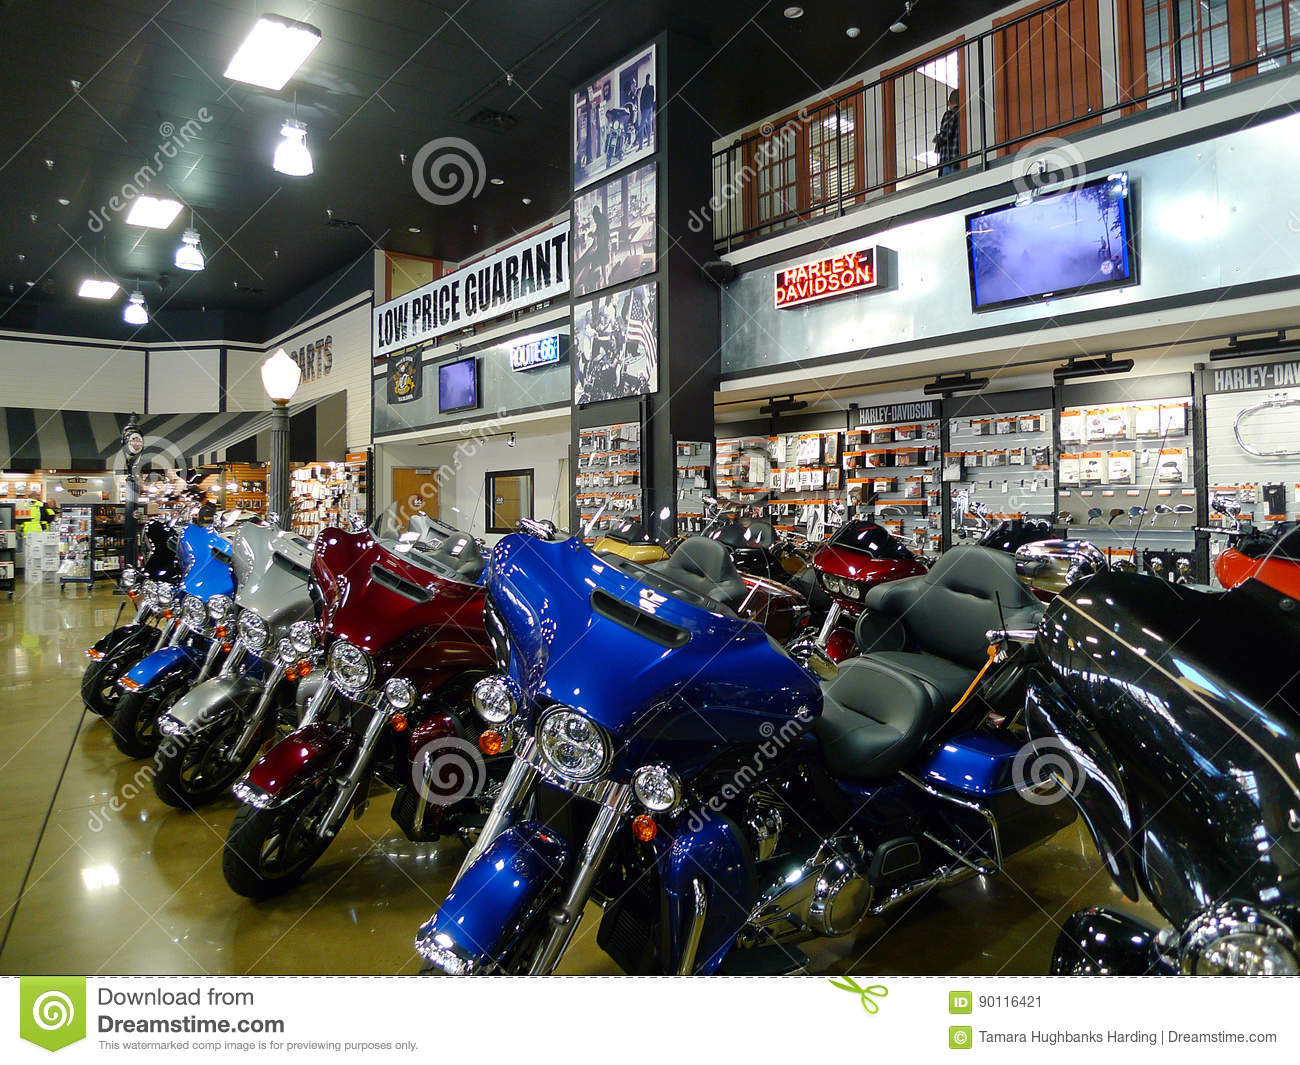 Tulsa Car Dealerships >> Route 66 Harley Davidson In Tulsa Oklahoma Display Of